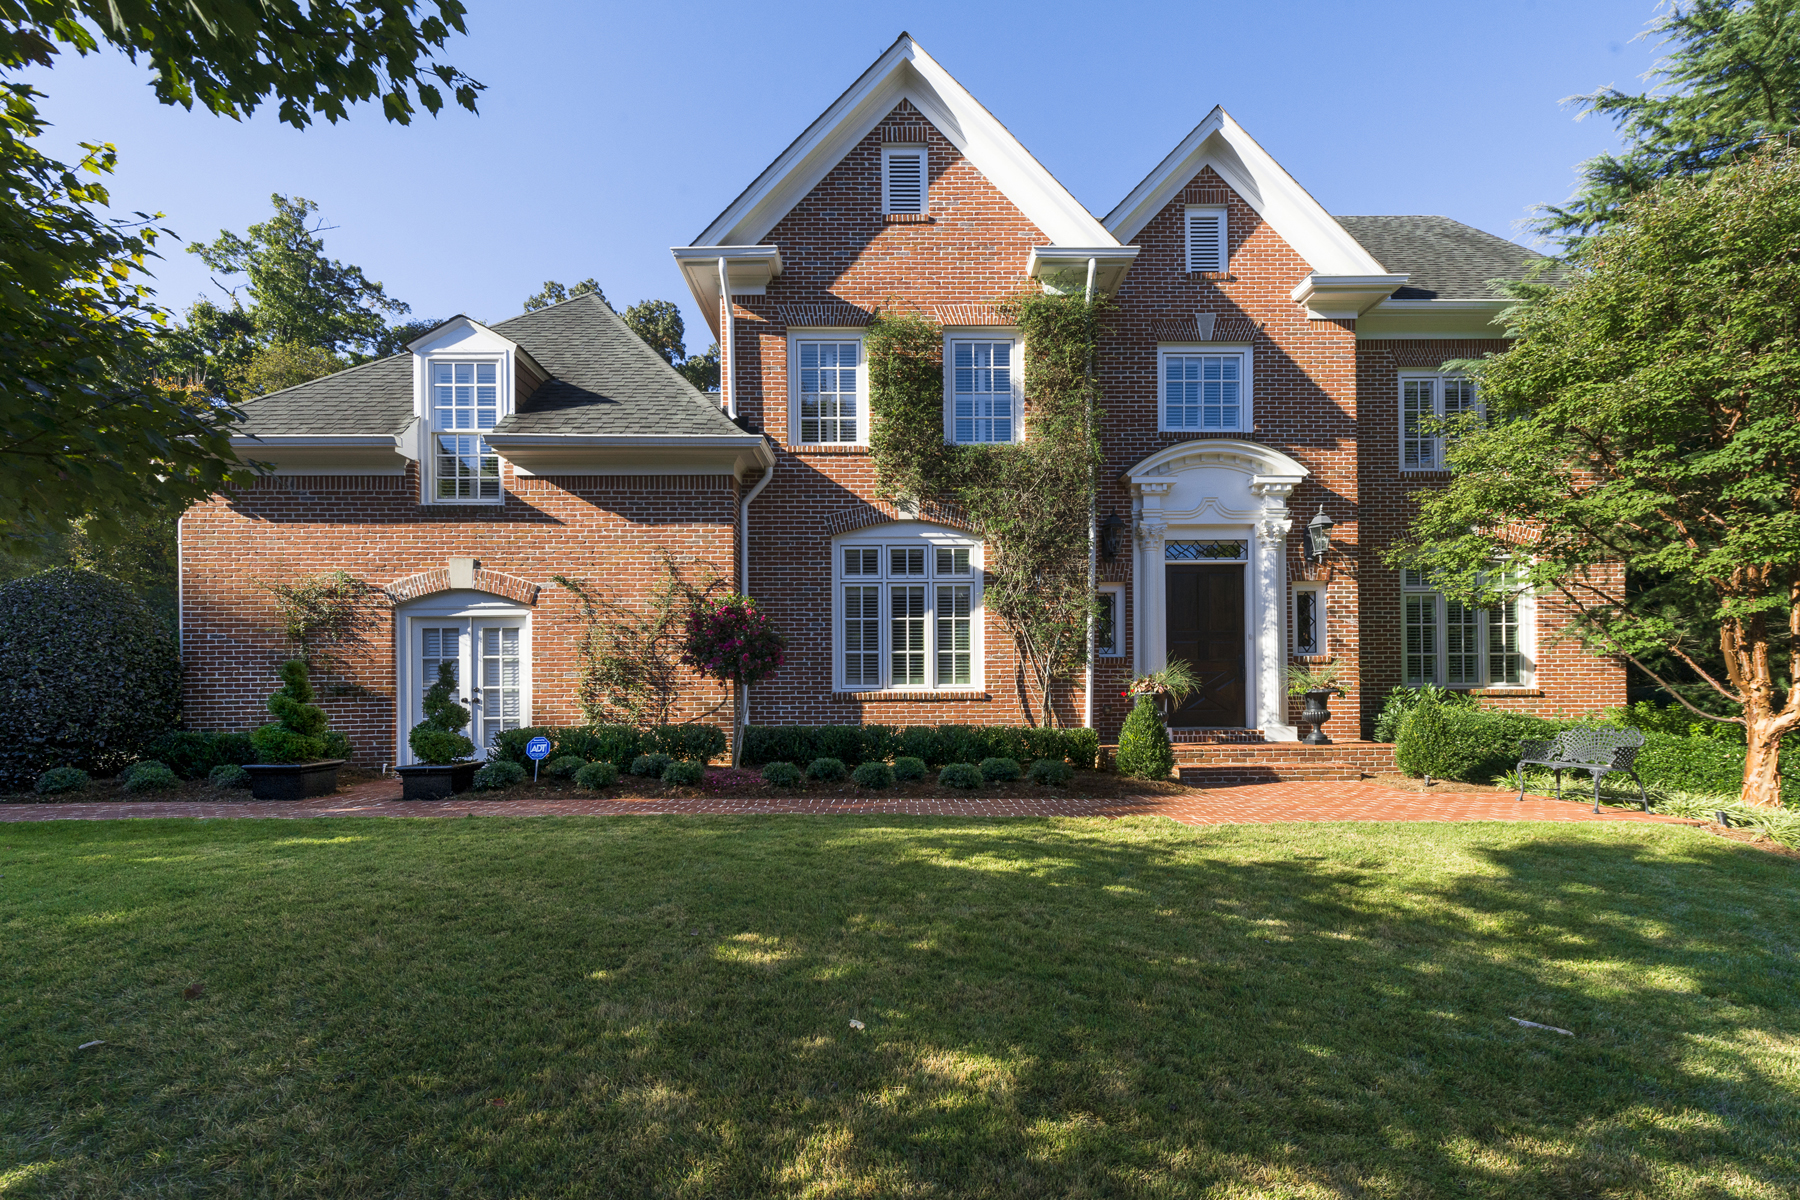 一戸建て のために 売買 アット Immaculate And Impeccably Maintained Cul-de-sac Home 1330 Draycott Place NW Buckhead, Atlanta, ジョージア 30327 アメリカ合衆国